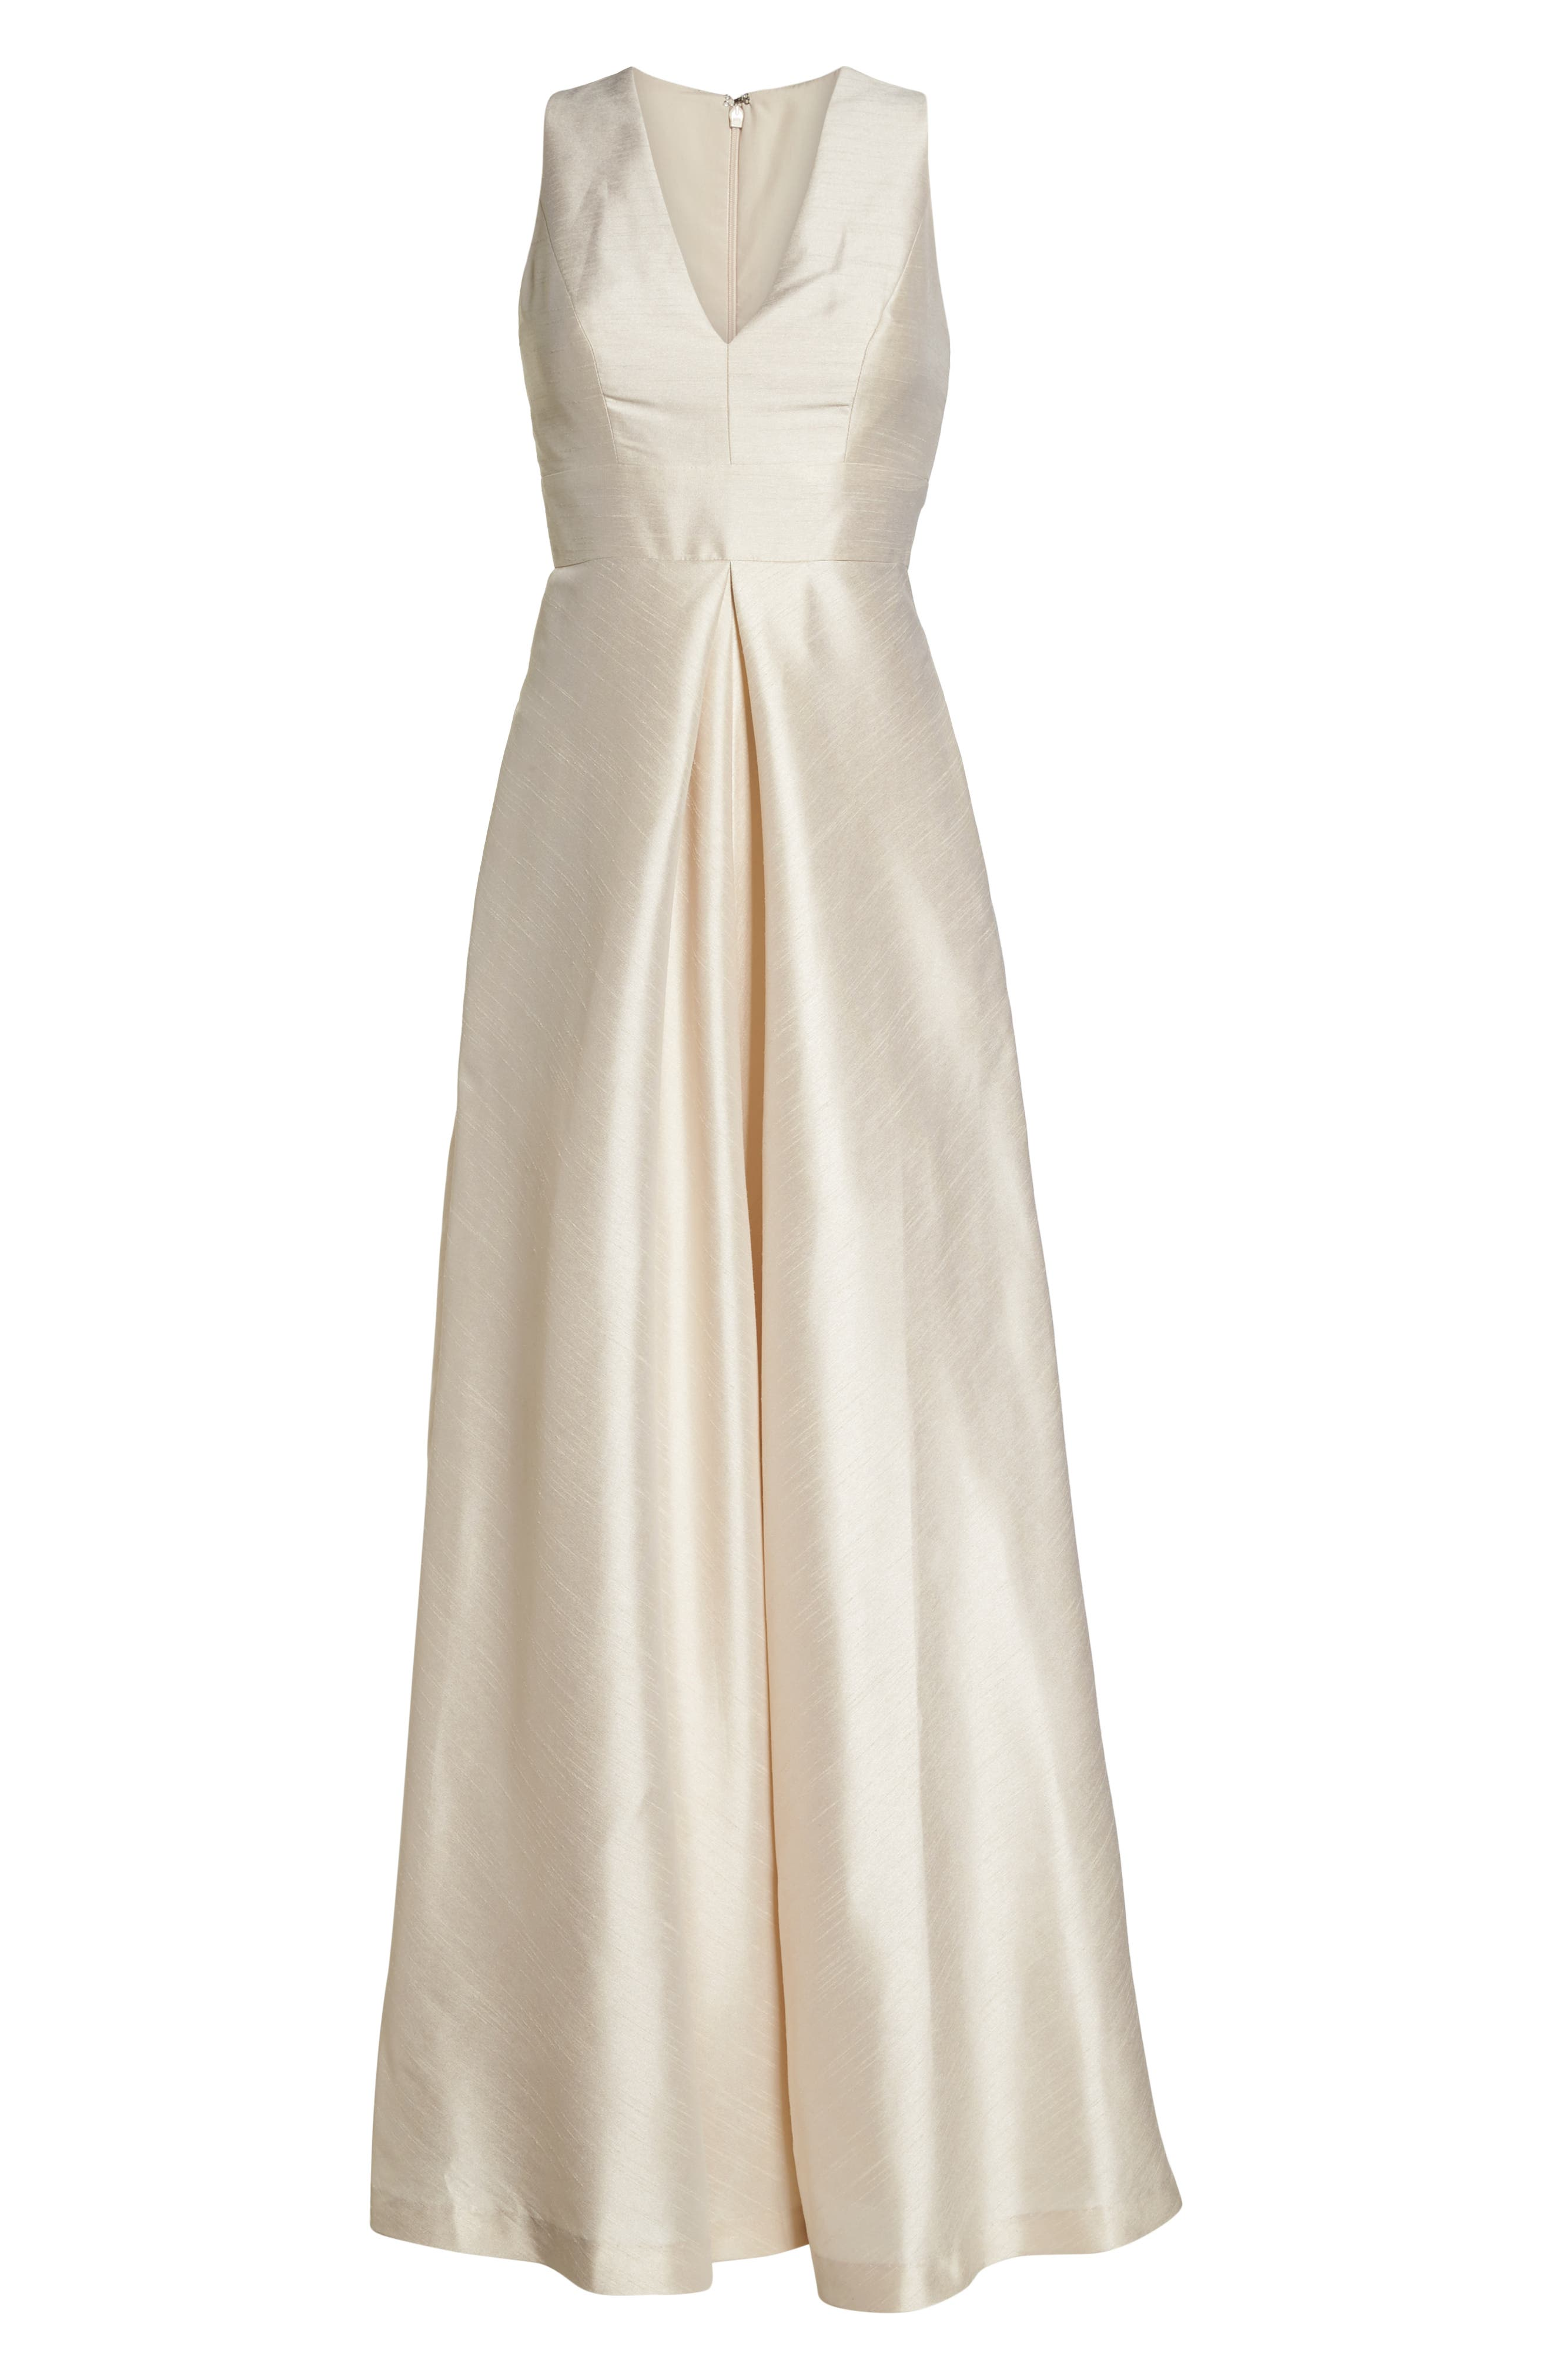 Vintage Inspired Wedding Dress | Vintage Style Wedding Dresses Womens Alfred Sung Dupioni A-Line Gown Size 12 - Beige $242.00 AT vintagedancer.com